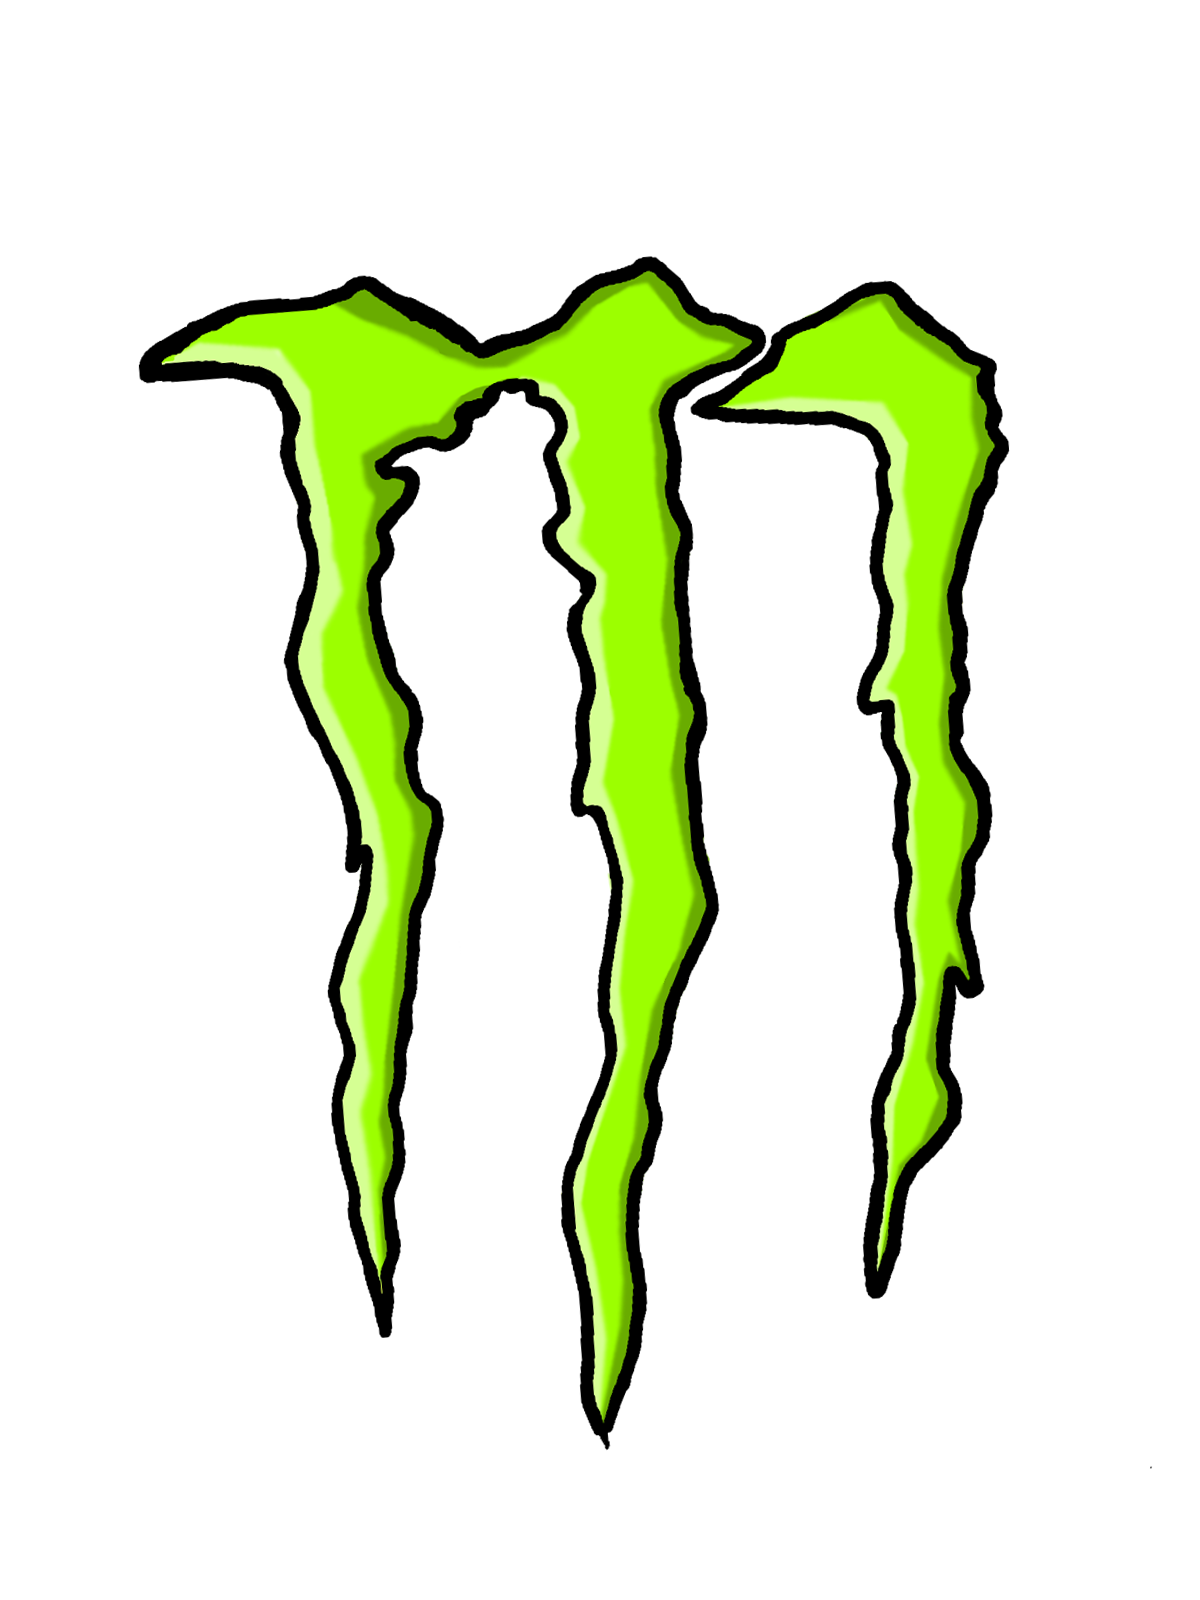 Monster logo clipart